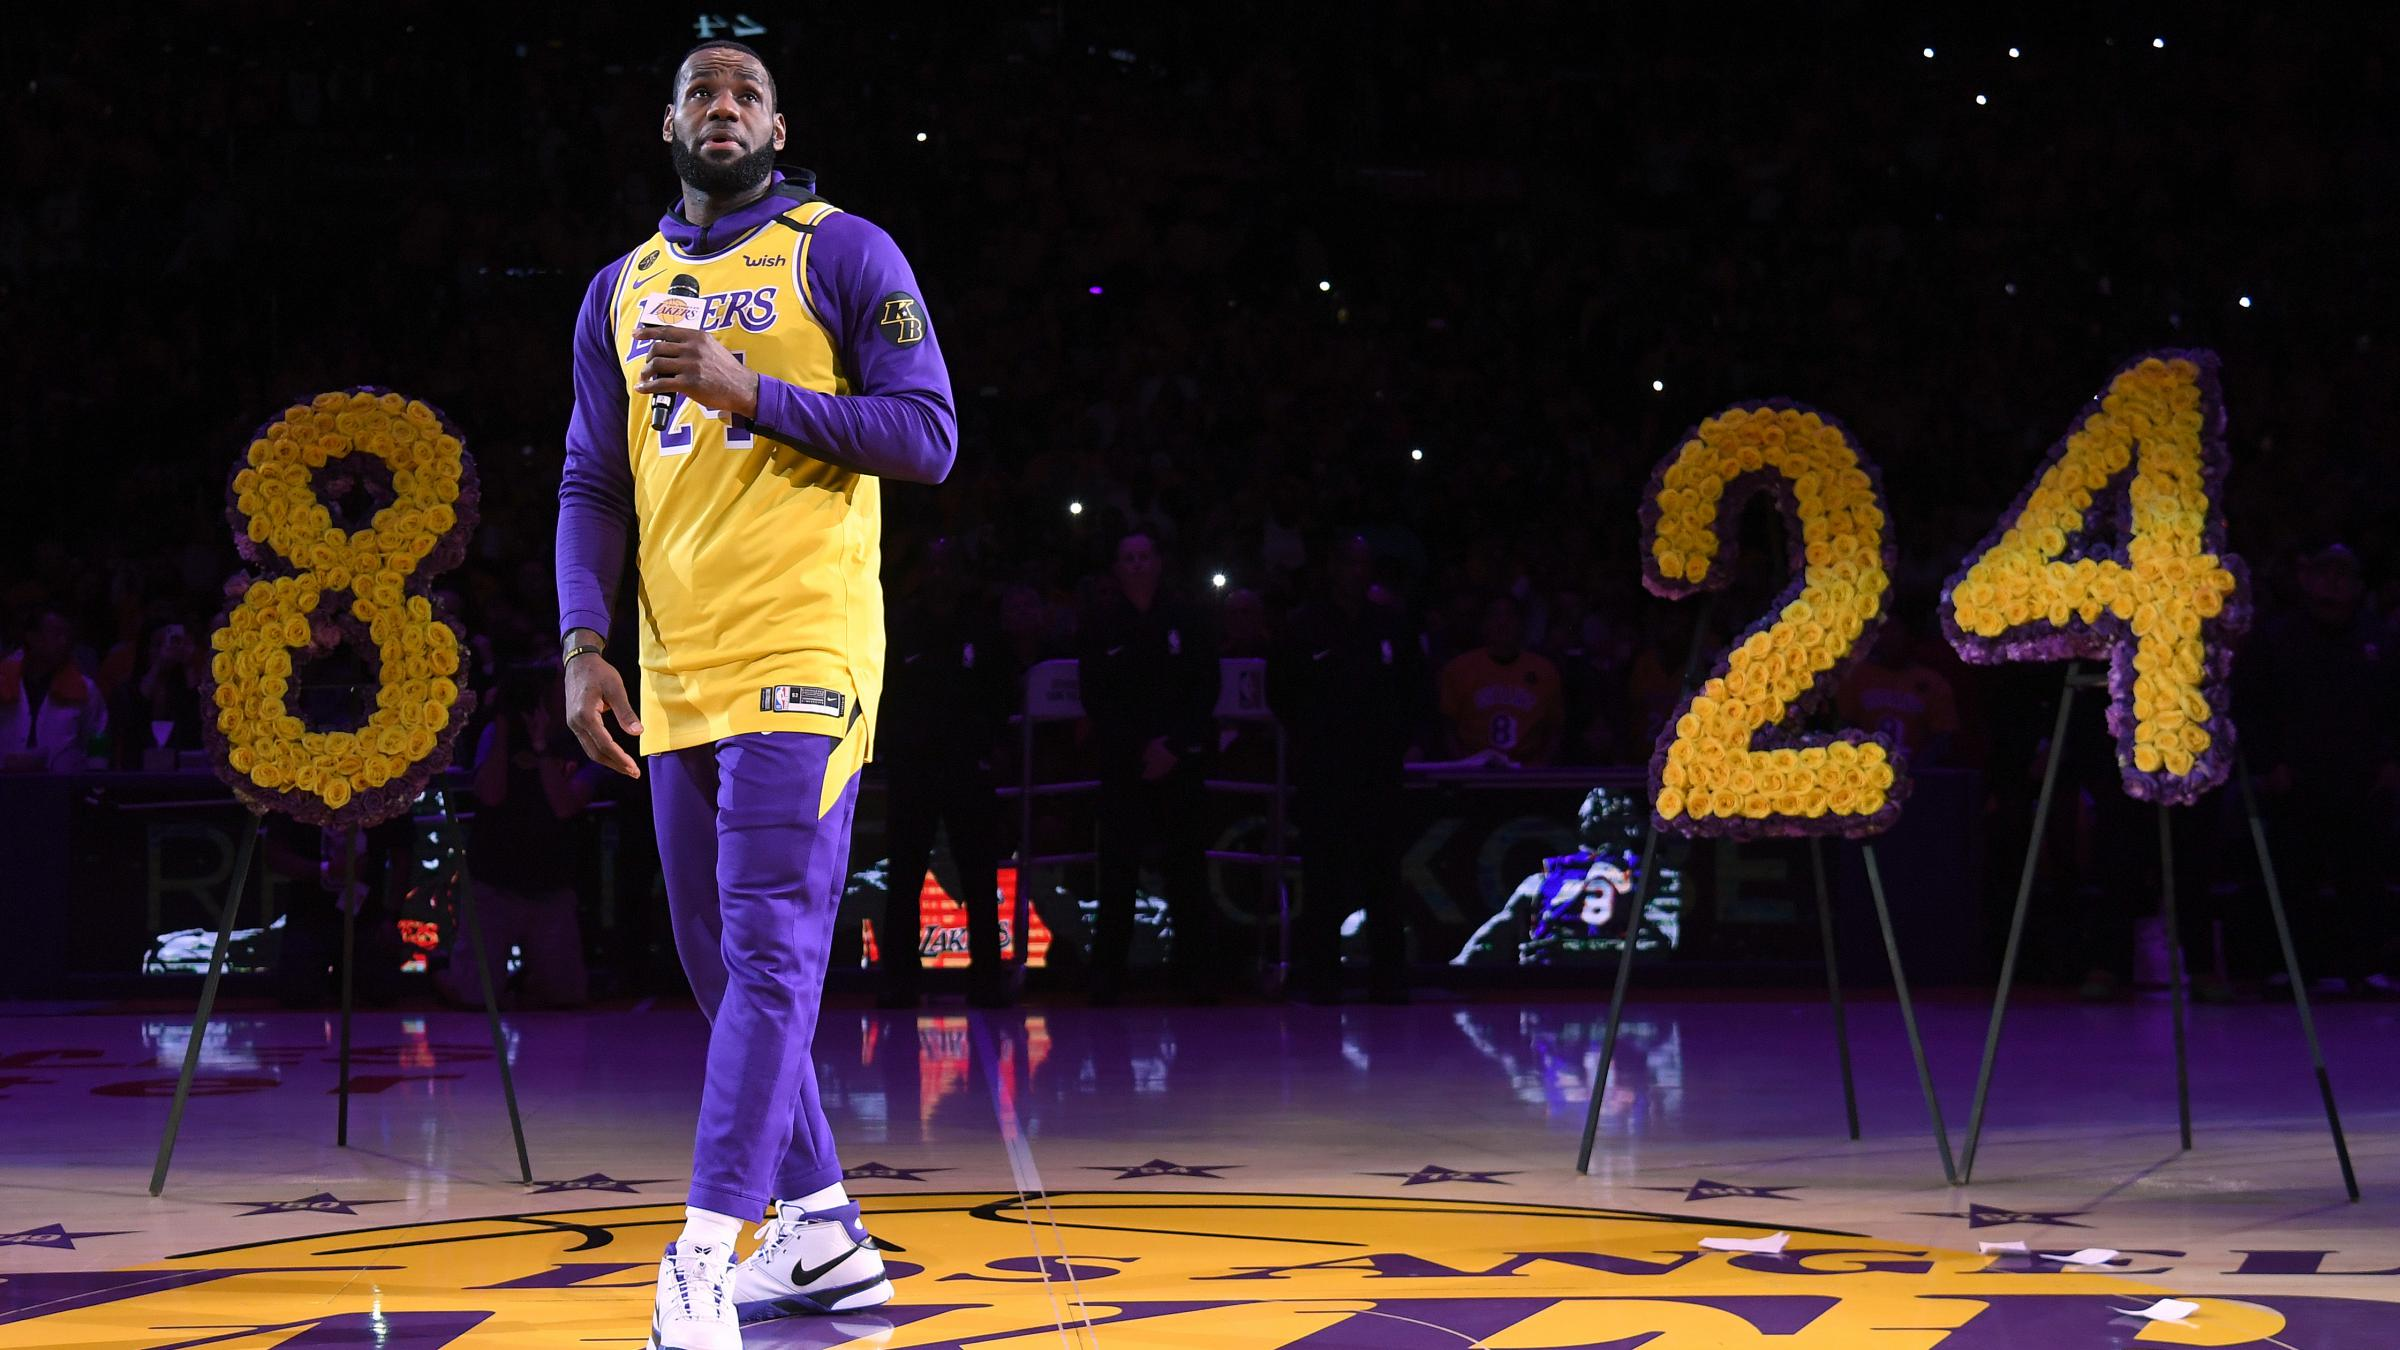 Portland's Carmelo Anthony to miss Lakers' Kobe Bryant tribute